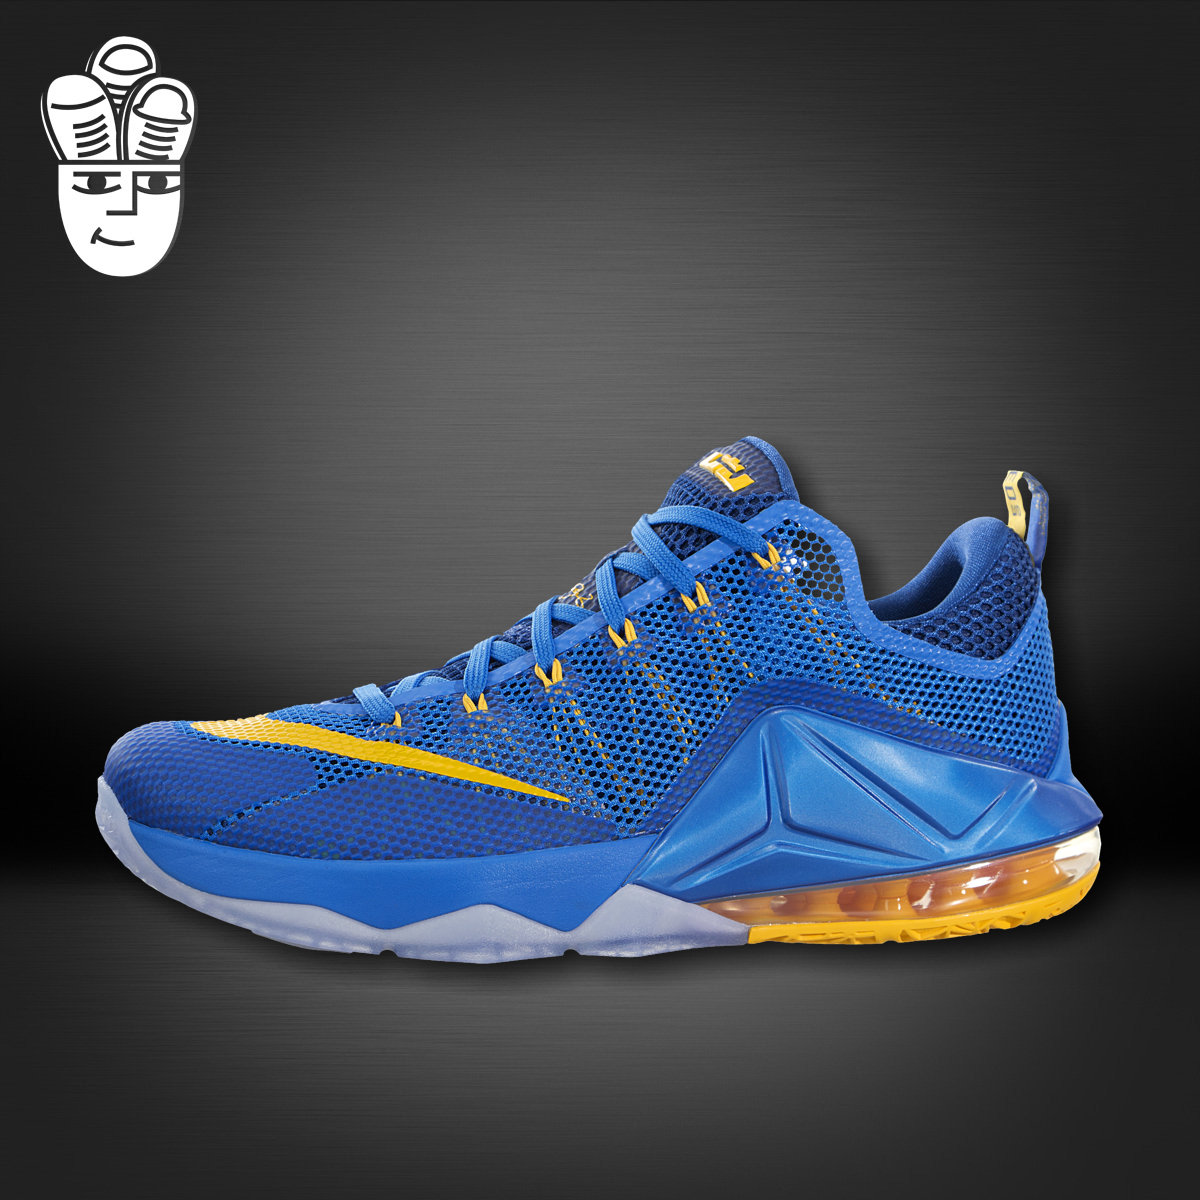 huge selection of eaf7f d5995 Buy Nike lebron xii low nike lebron james 12 generations ...